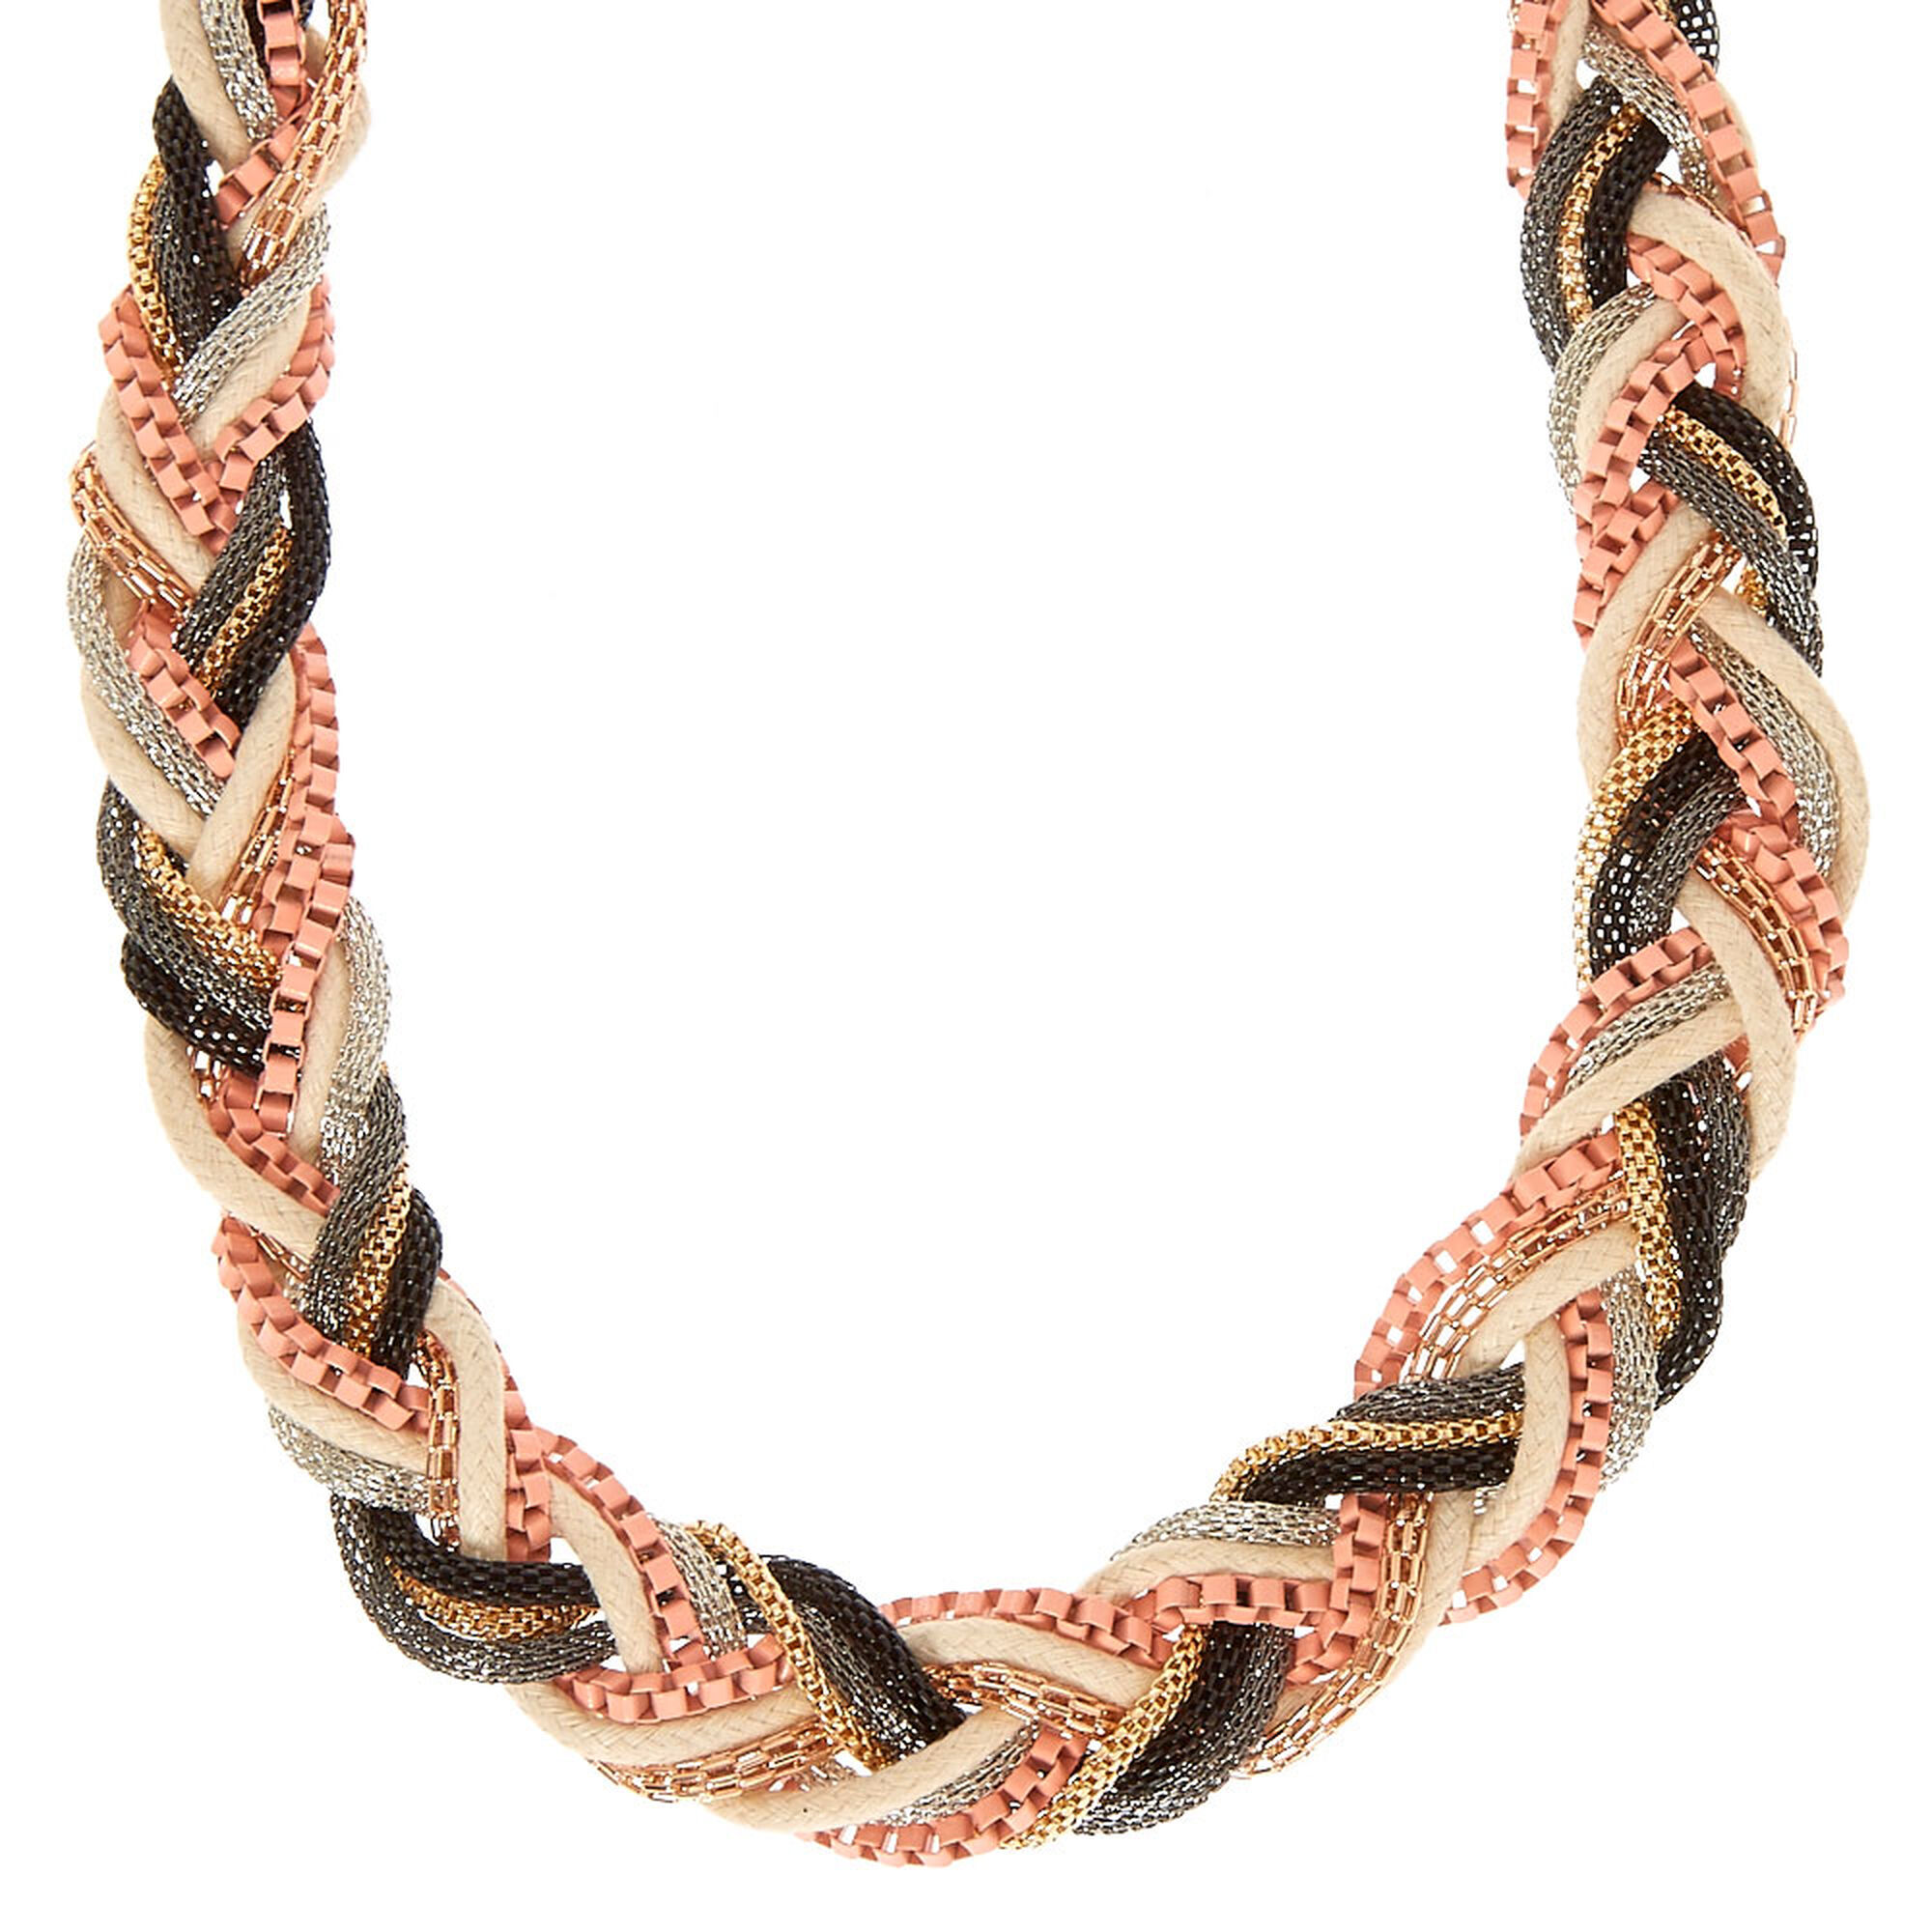 usa made l braided necklace cord brass in and leather rope